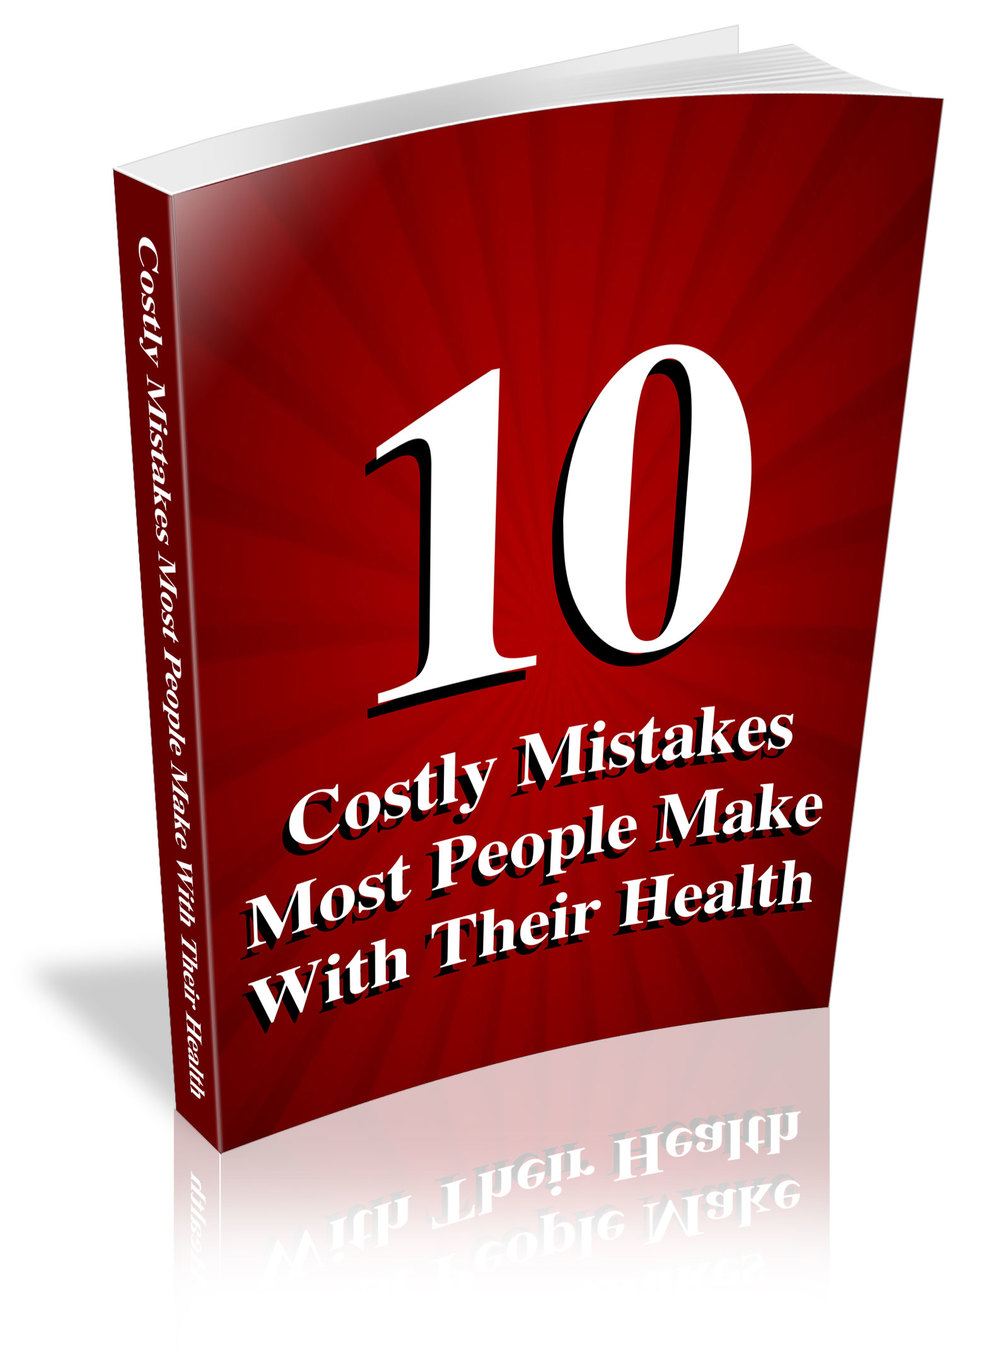 10-costly-mistakes-nutrition-facts-global-health-renegade.jpg